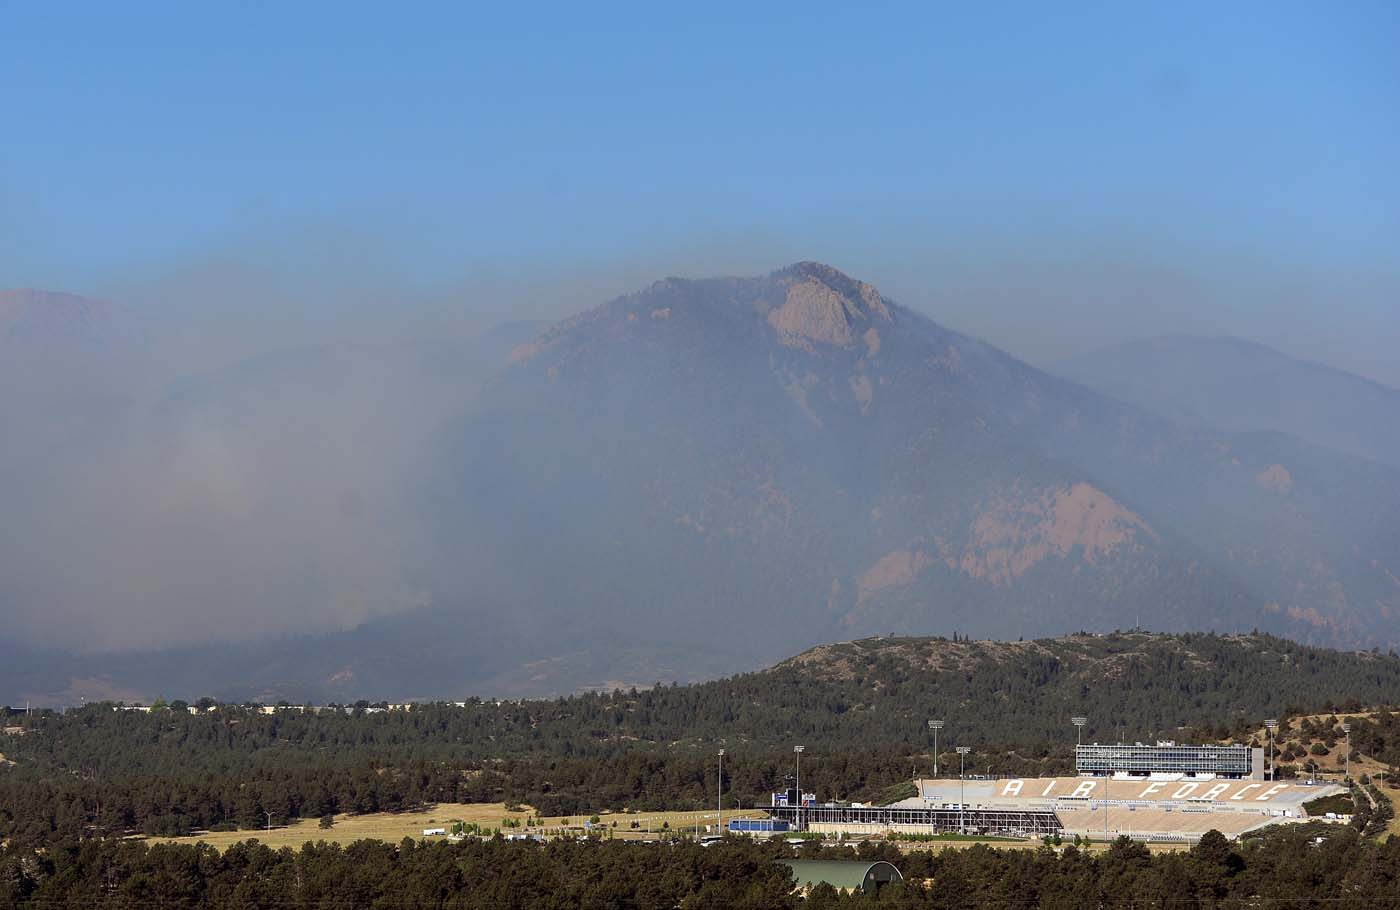 JUNE 27: Smoke from the Waldo Canyon fire lies behind the Air Force Academy stadium on June 27, 2012 in Colorado Springs, Colorado. (Chris Schneider/Getty Images)